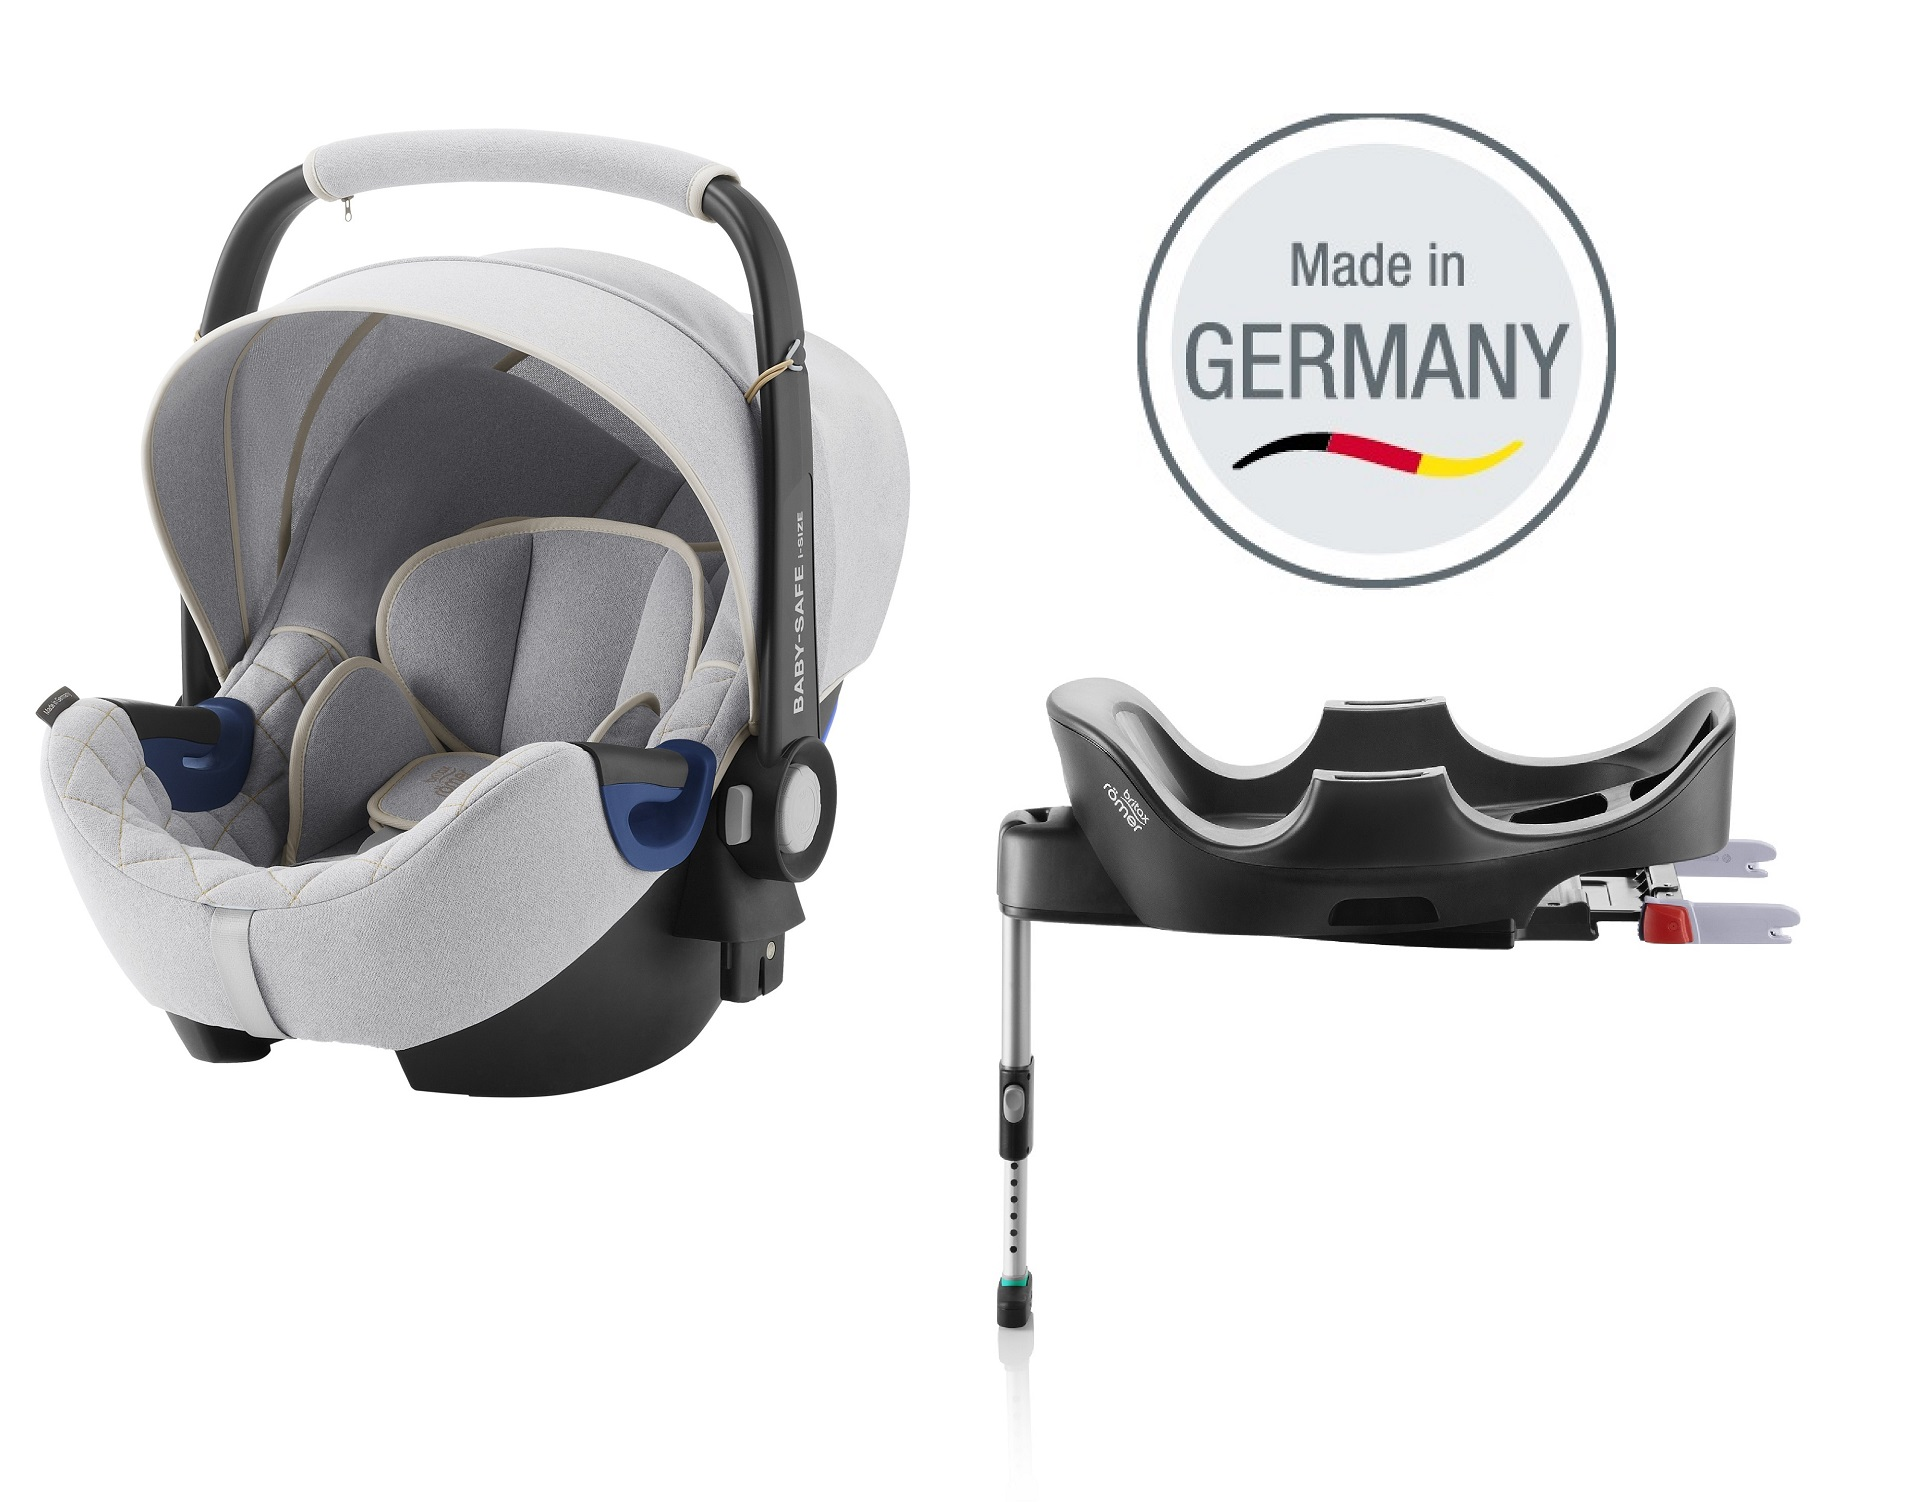 britax r mer infant car seat baby safe 2 i size including flex base special edition nordic. Black Bedroom Furniture Sets. Home Design Ideas